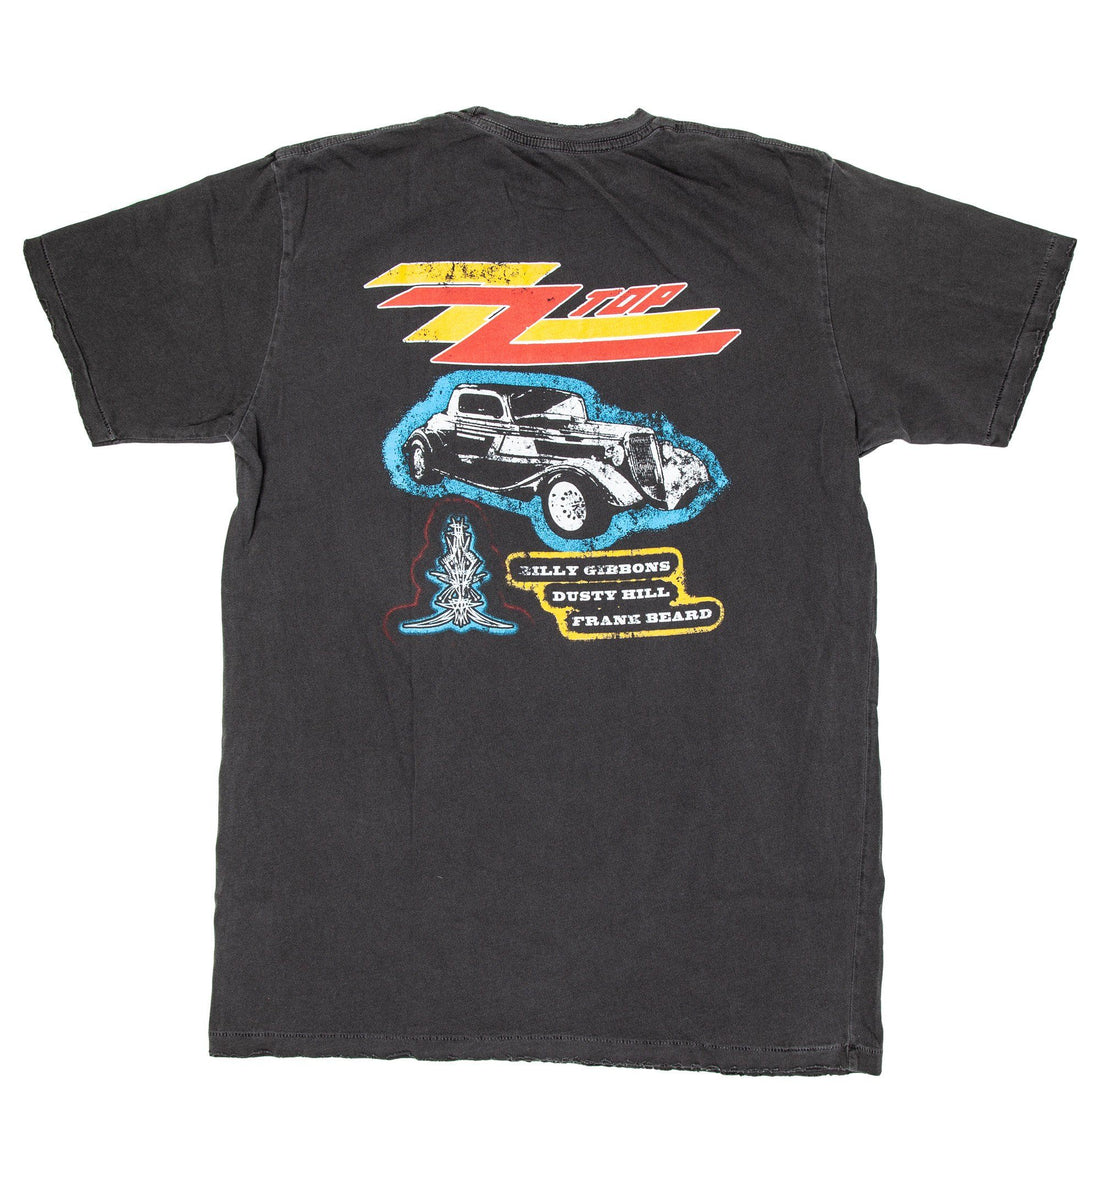 Midnight Rider - ZZ Top Eliminator Tee - Tops - Iron and Resin